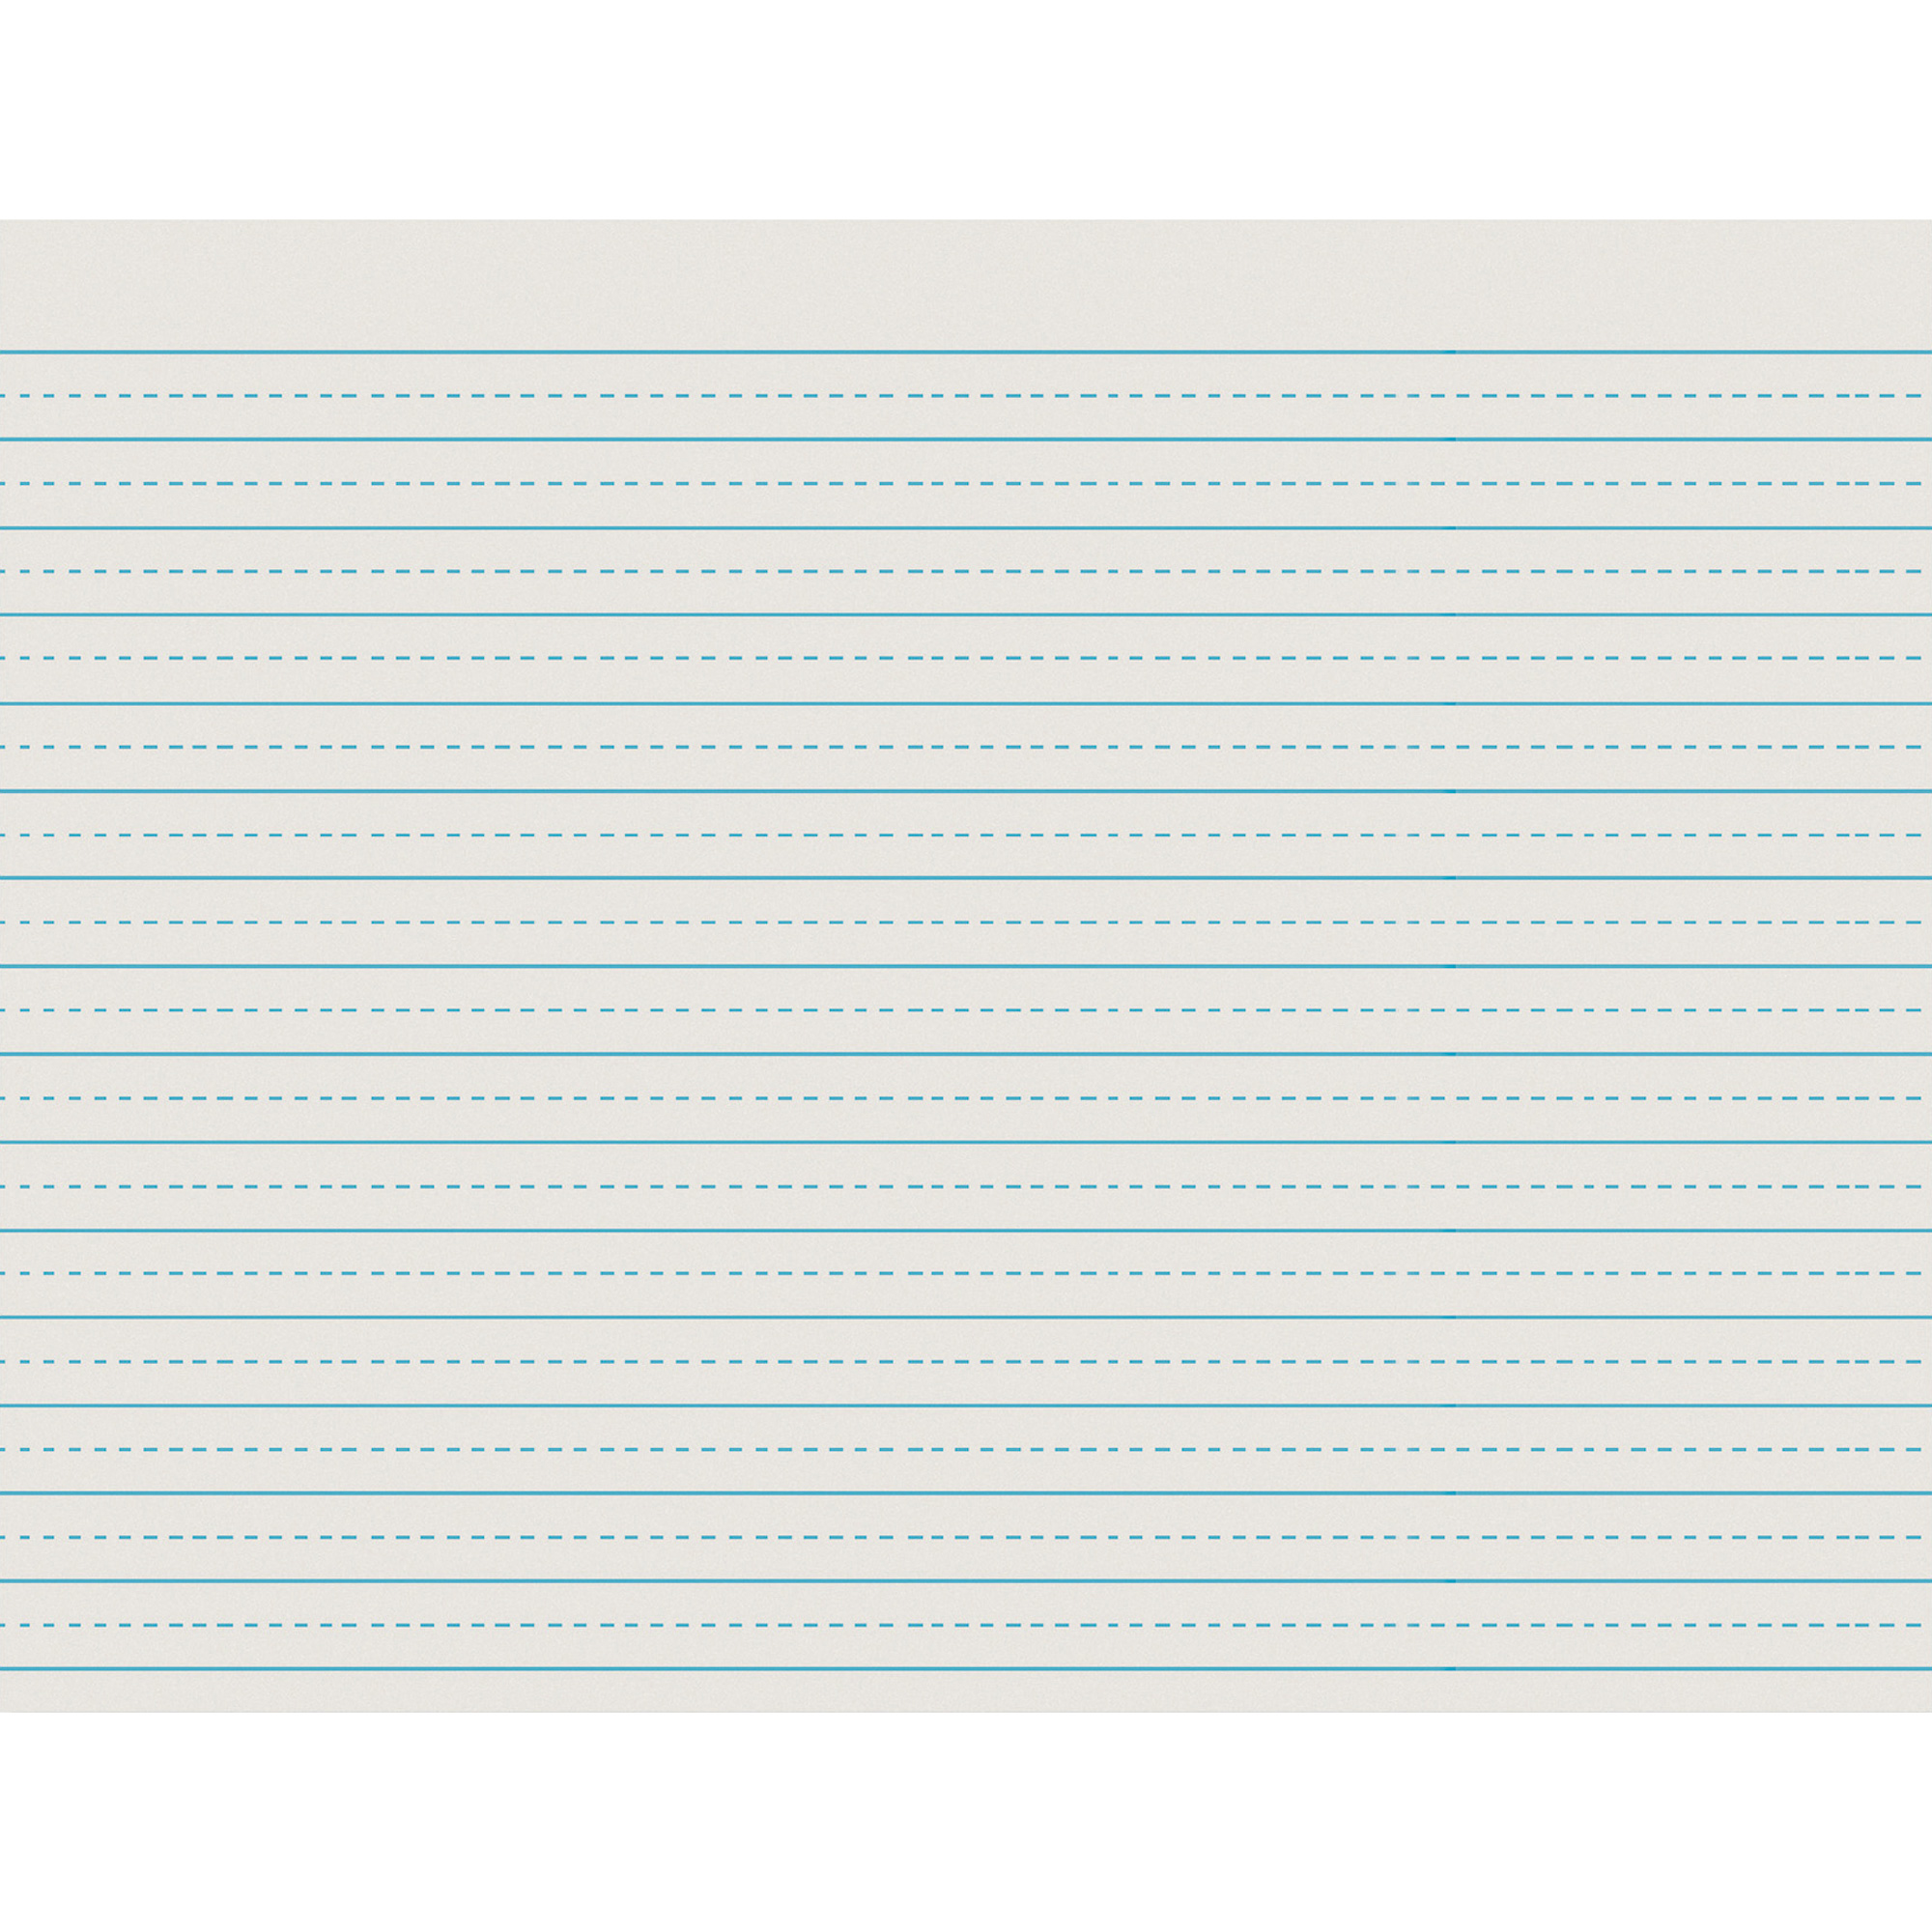 """Pacon Newsprint Handwriting Paper, Alternate Dotted, 11"""" x 8.5"""", Ruled Long, 500 Sheets"""